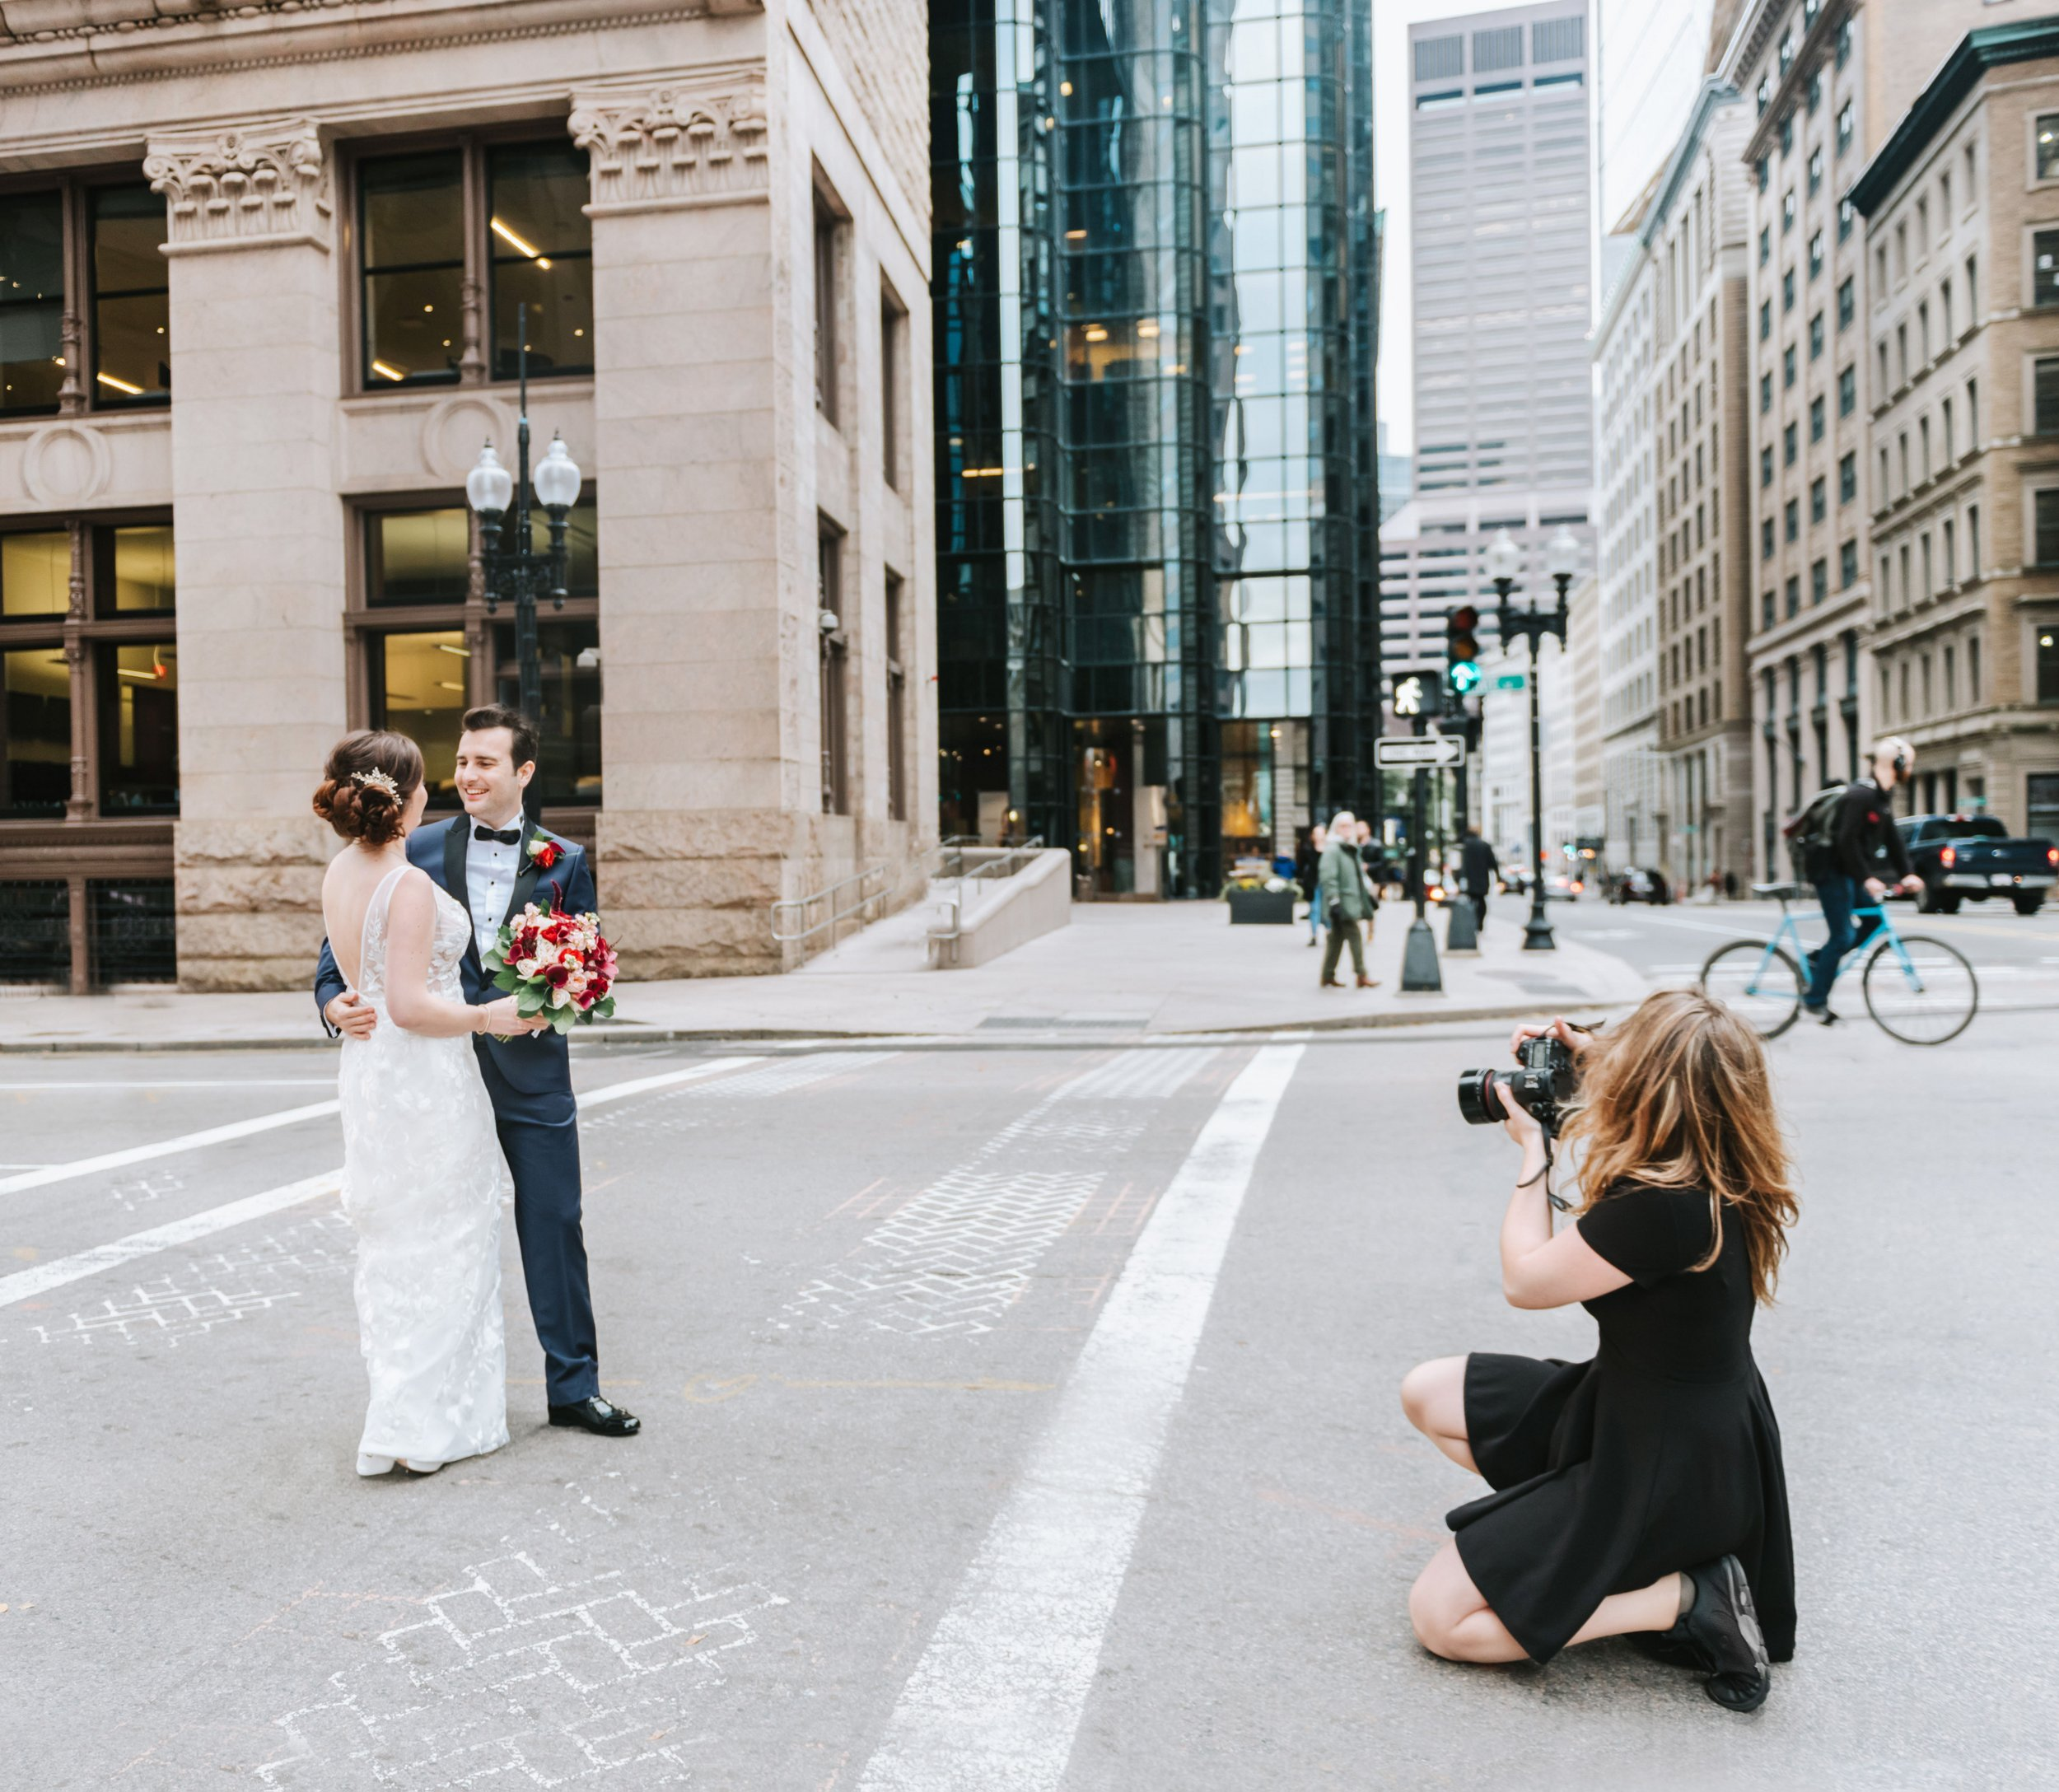 Lena-Mirisola-Boston-Wedding-Photographer-Behind-The-Scenes-36.jpg